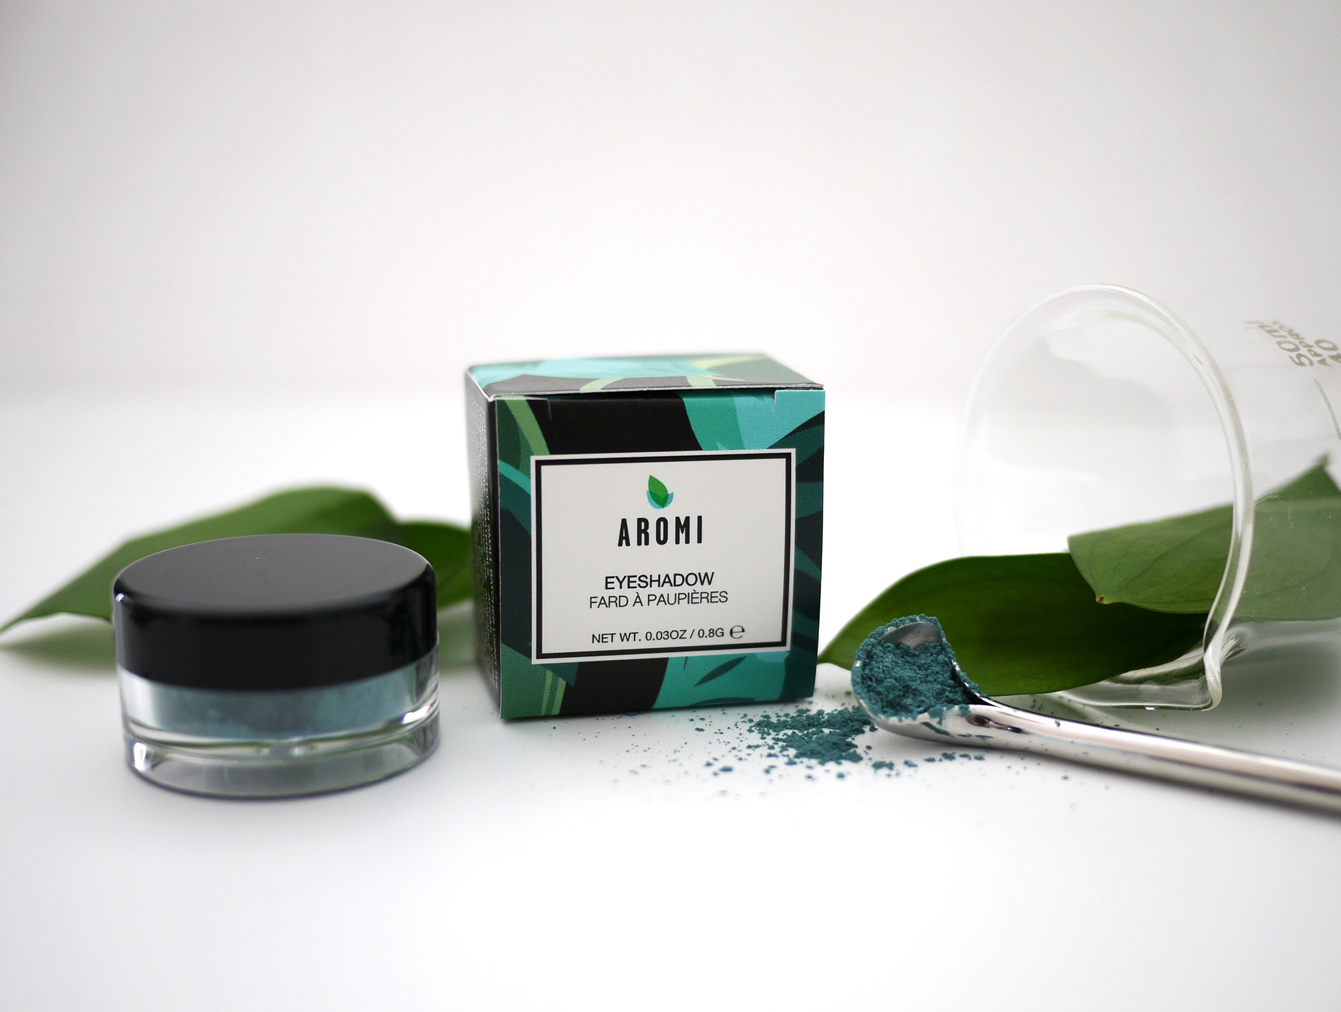 Aromi Teal Loose Mineral Eyeshadow - handblended in small batches with the finest minerals, pigments, and ingredients available.